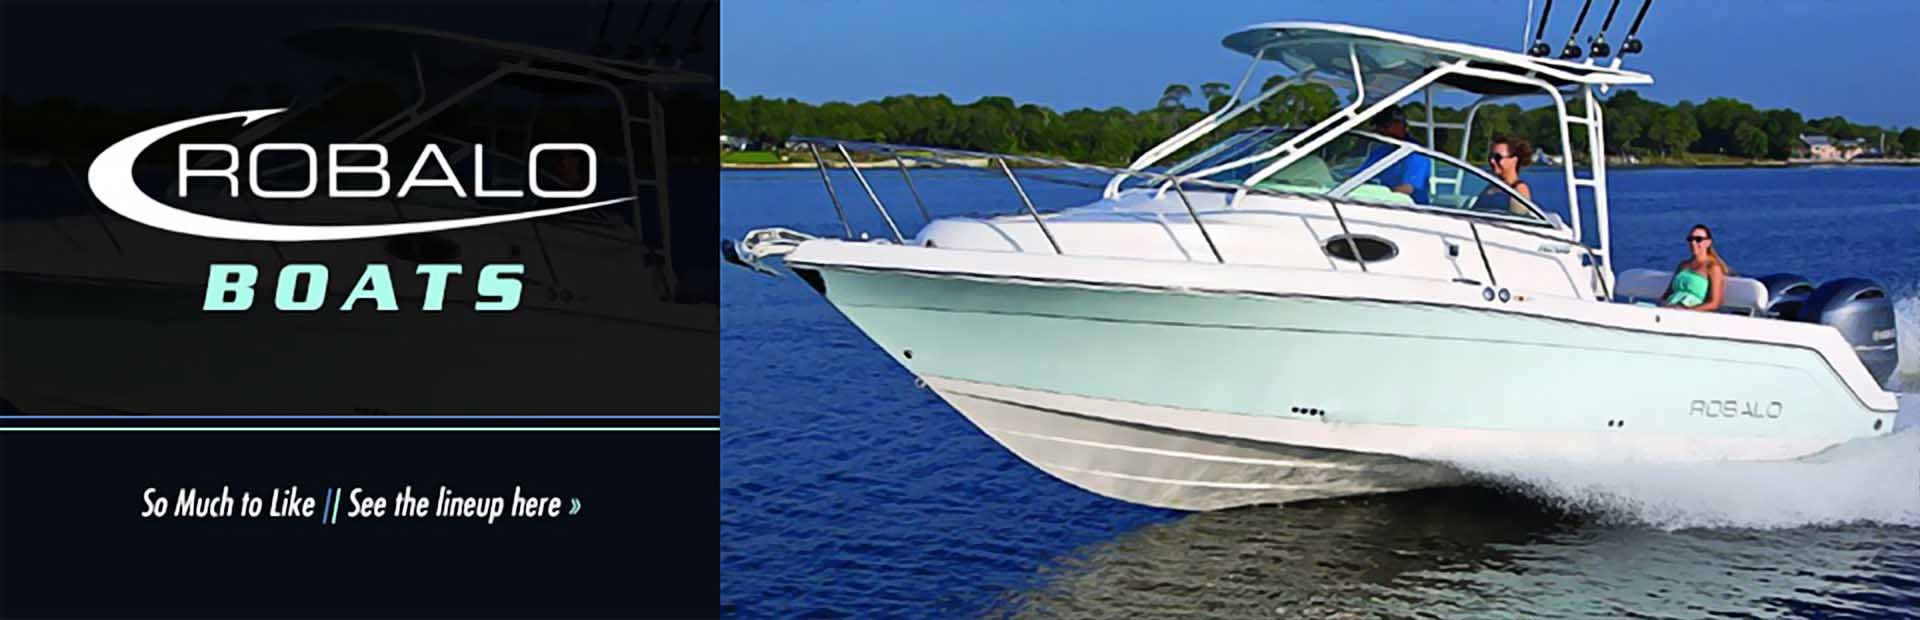 Robalo Boats: Click here to view the models.